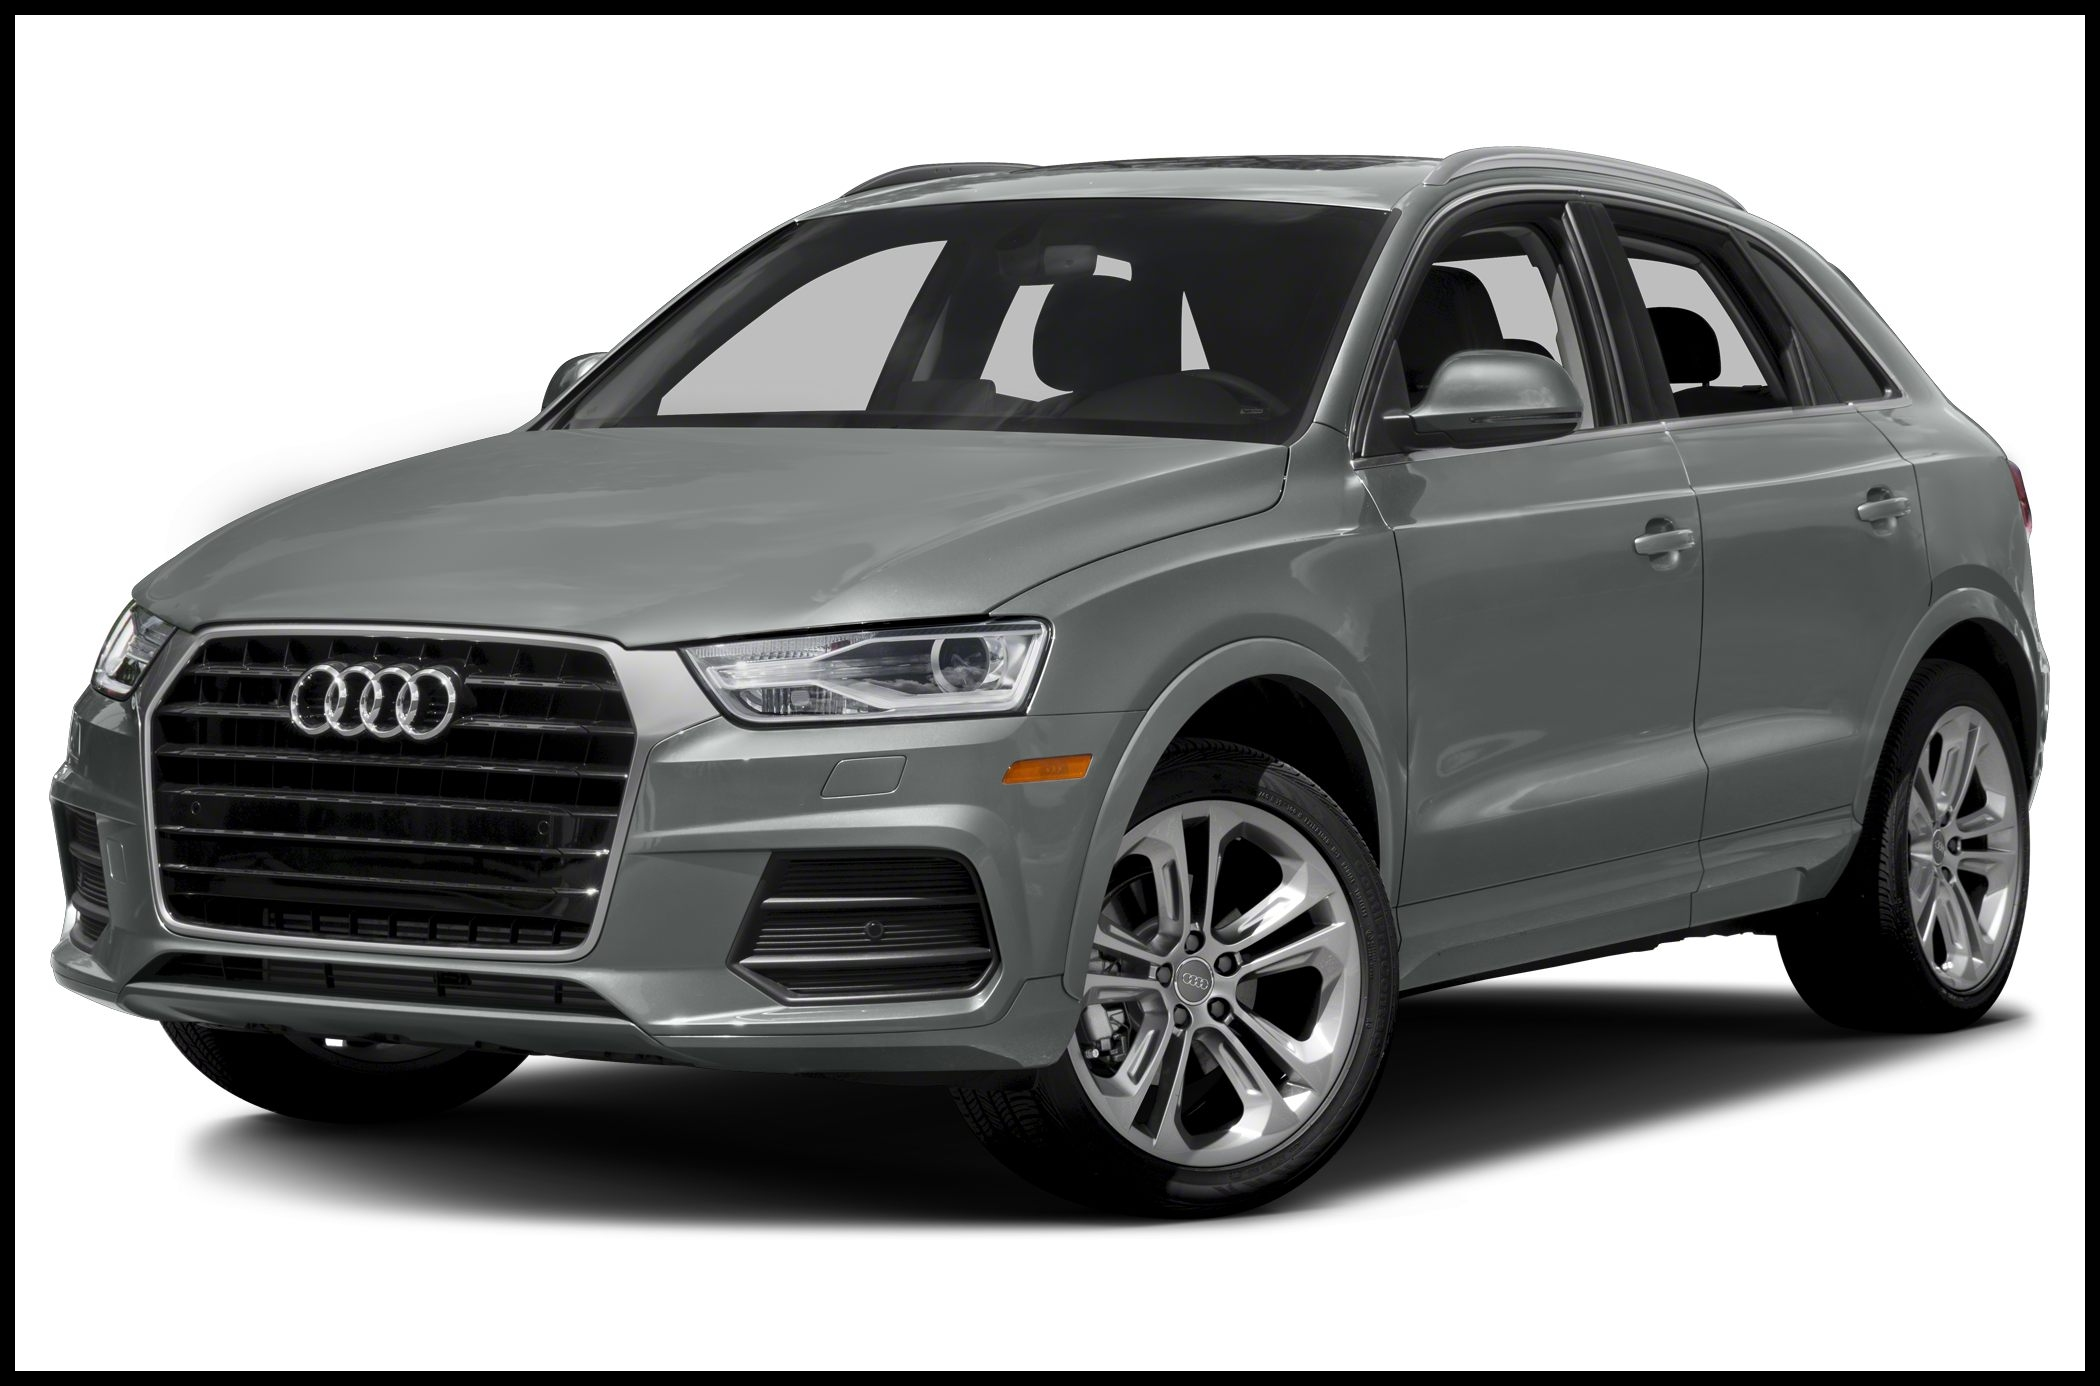 2018 Audi Q3 2 0T Premium 4dr All wheel Drive quattro Sport Utility Specs and Prices